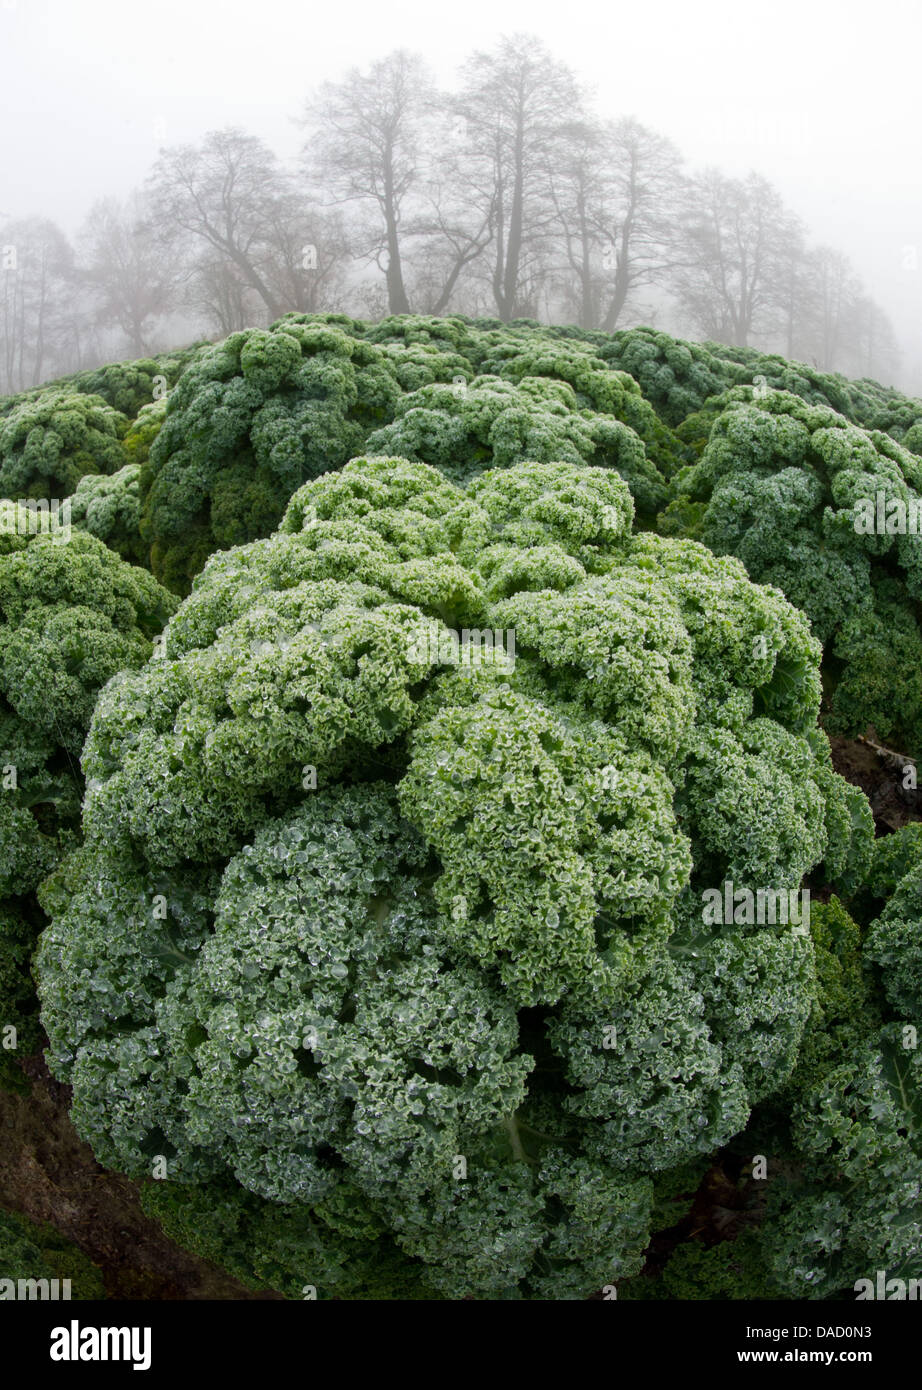 Green cabbage grows on a field on the Leschnik market gardening farm in Drahnsdorf, Germany, 23 November 2011. For - Stock Image